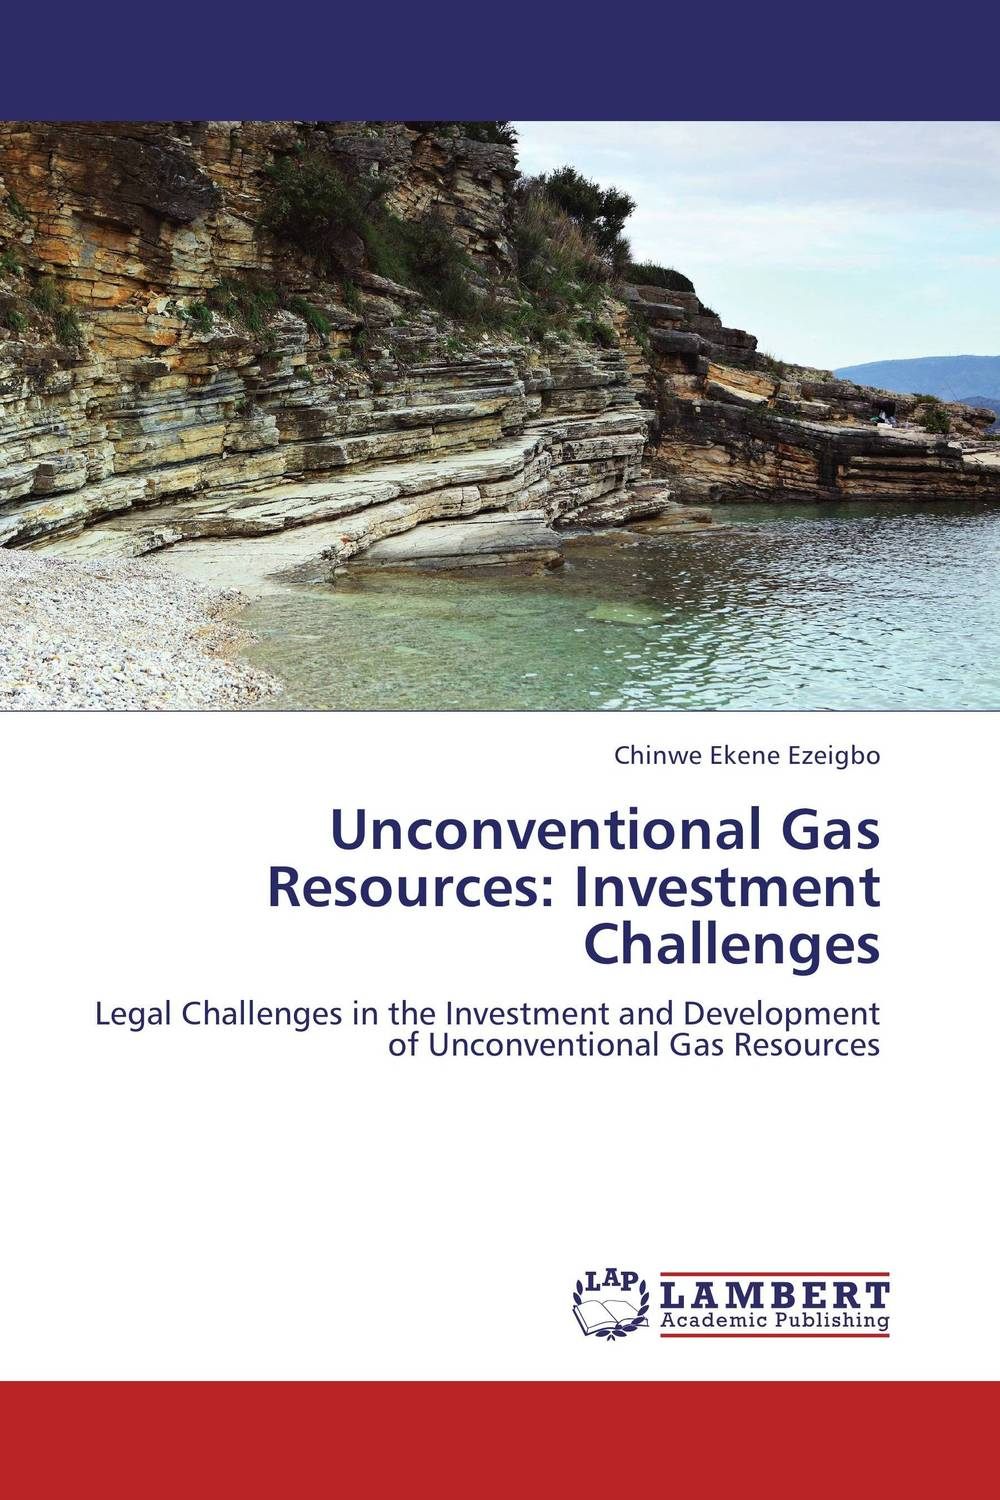 Unconventional Gas Resources: Investment Challenges